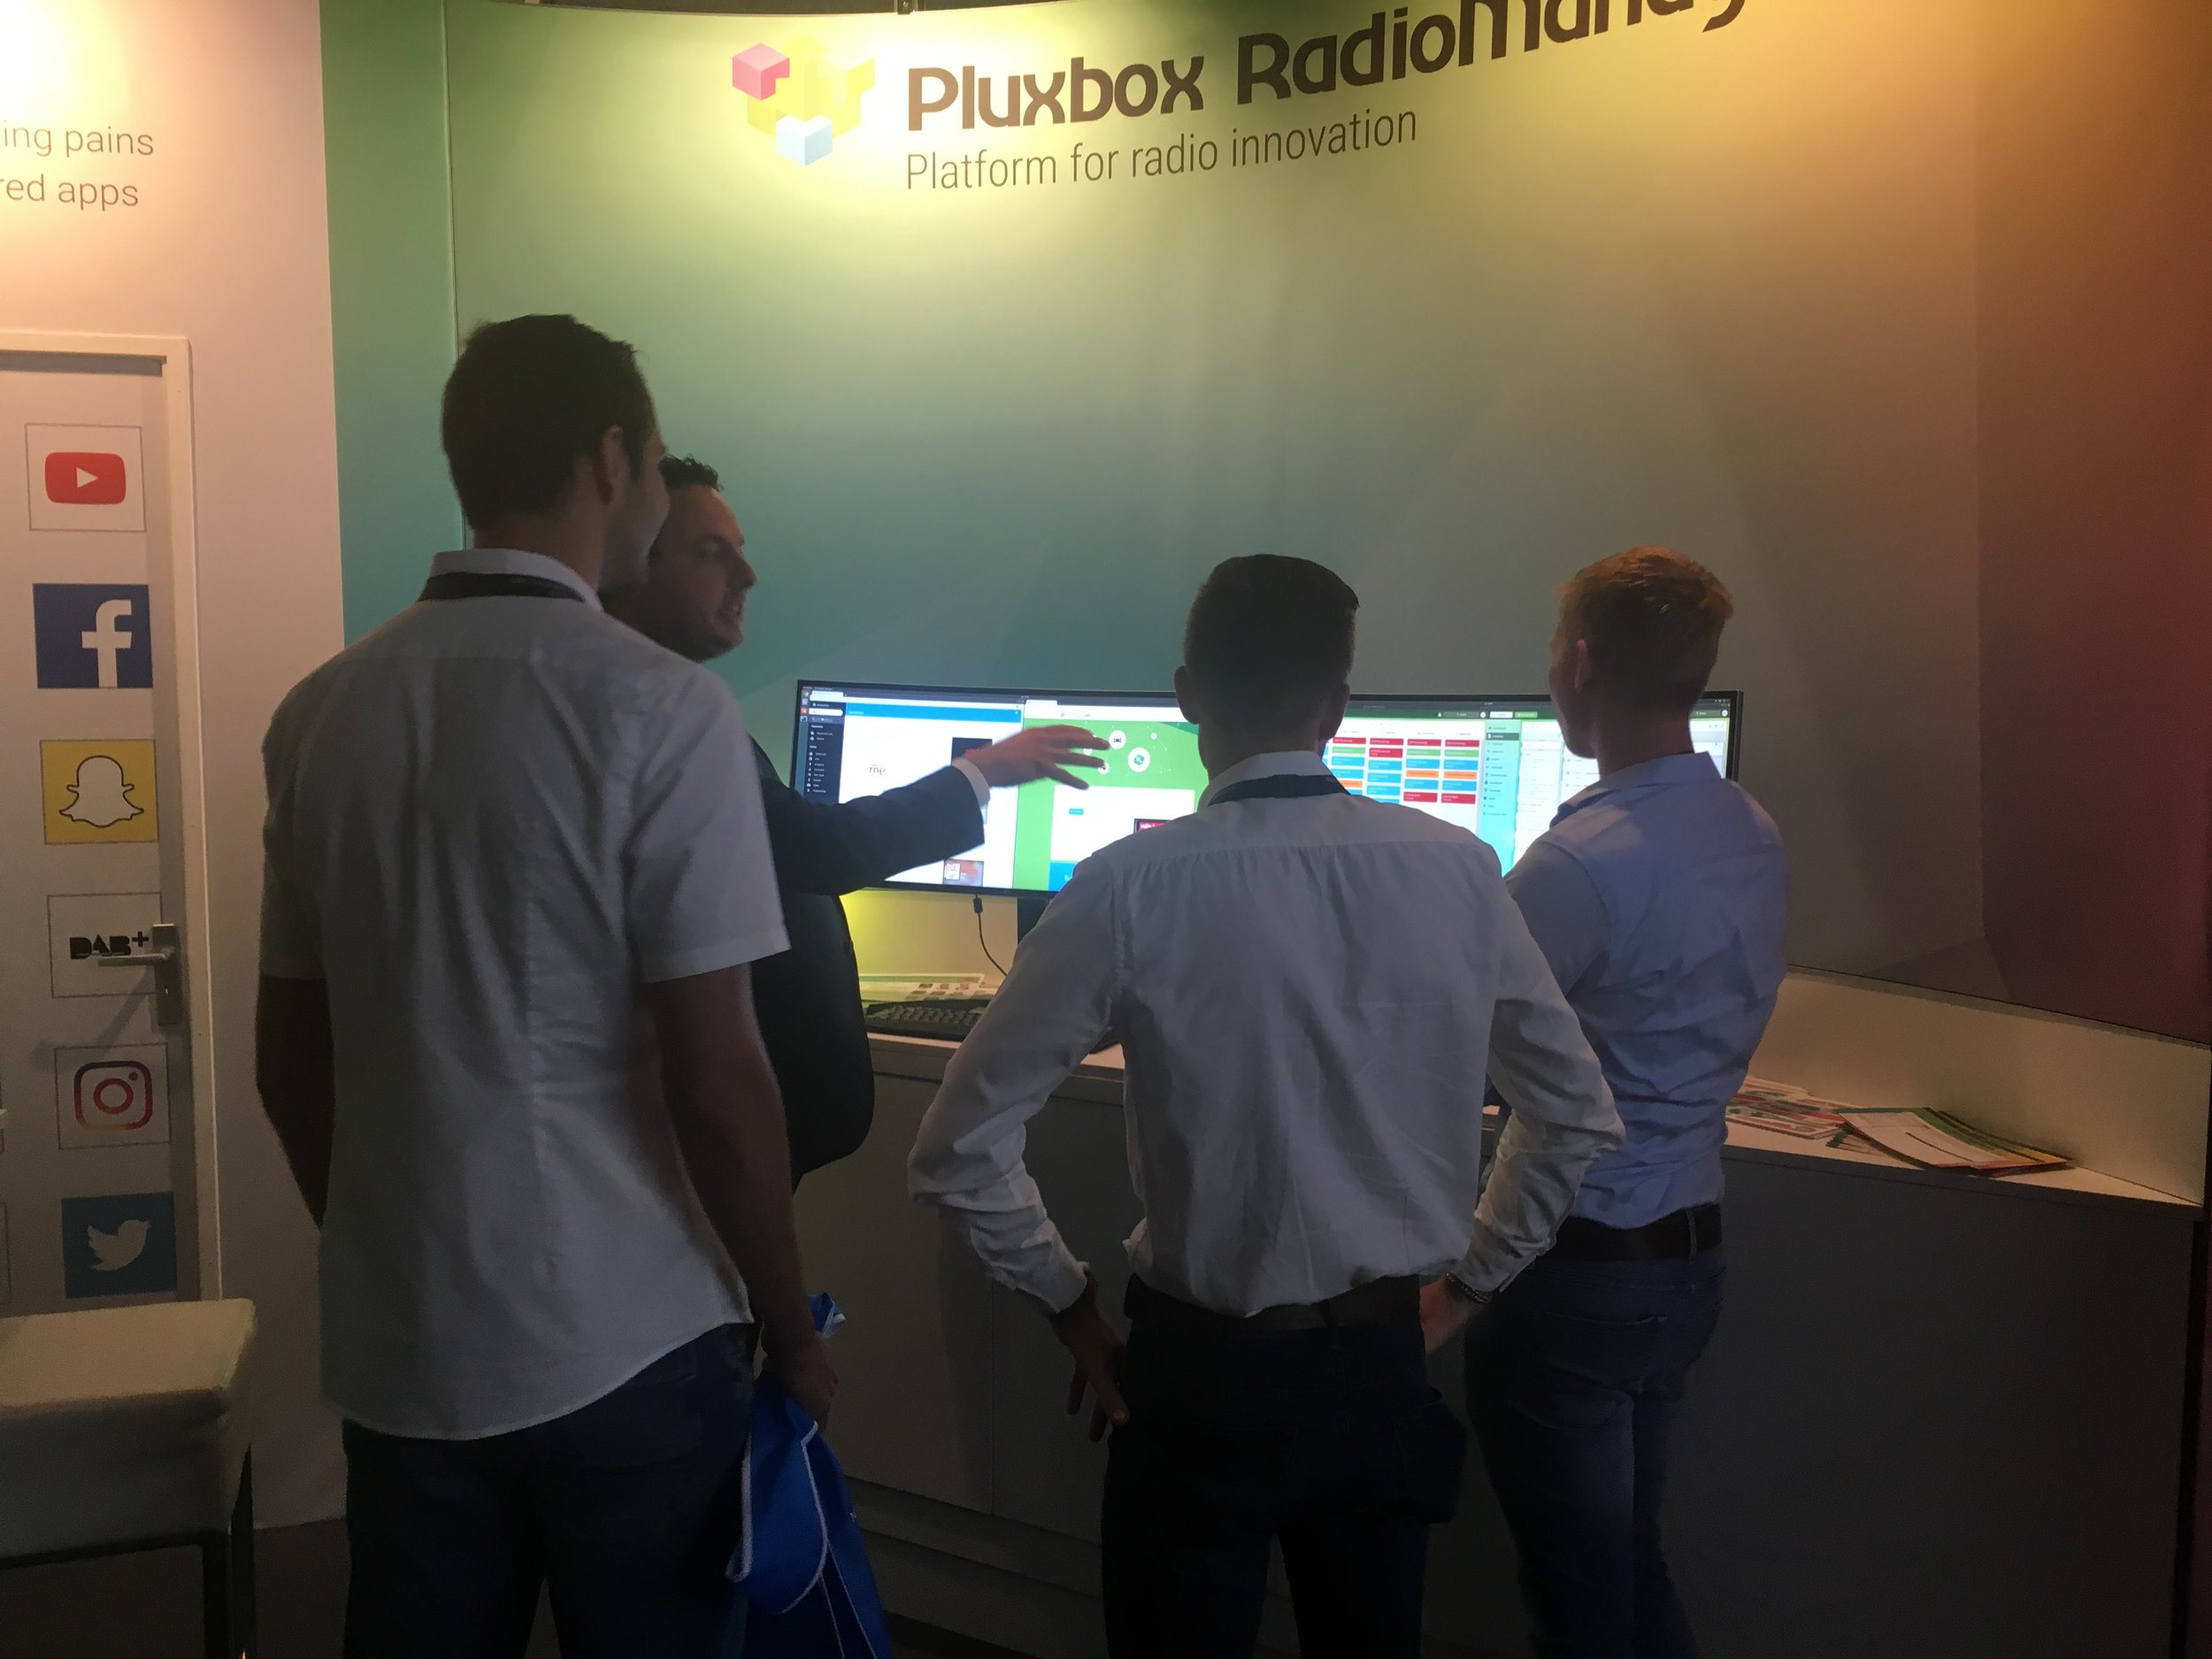 The booth of PLUXBOX at the IBC2018